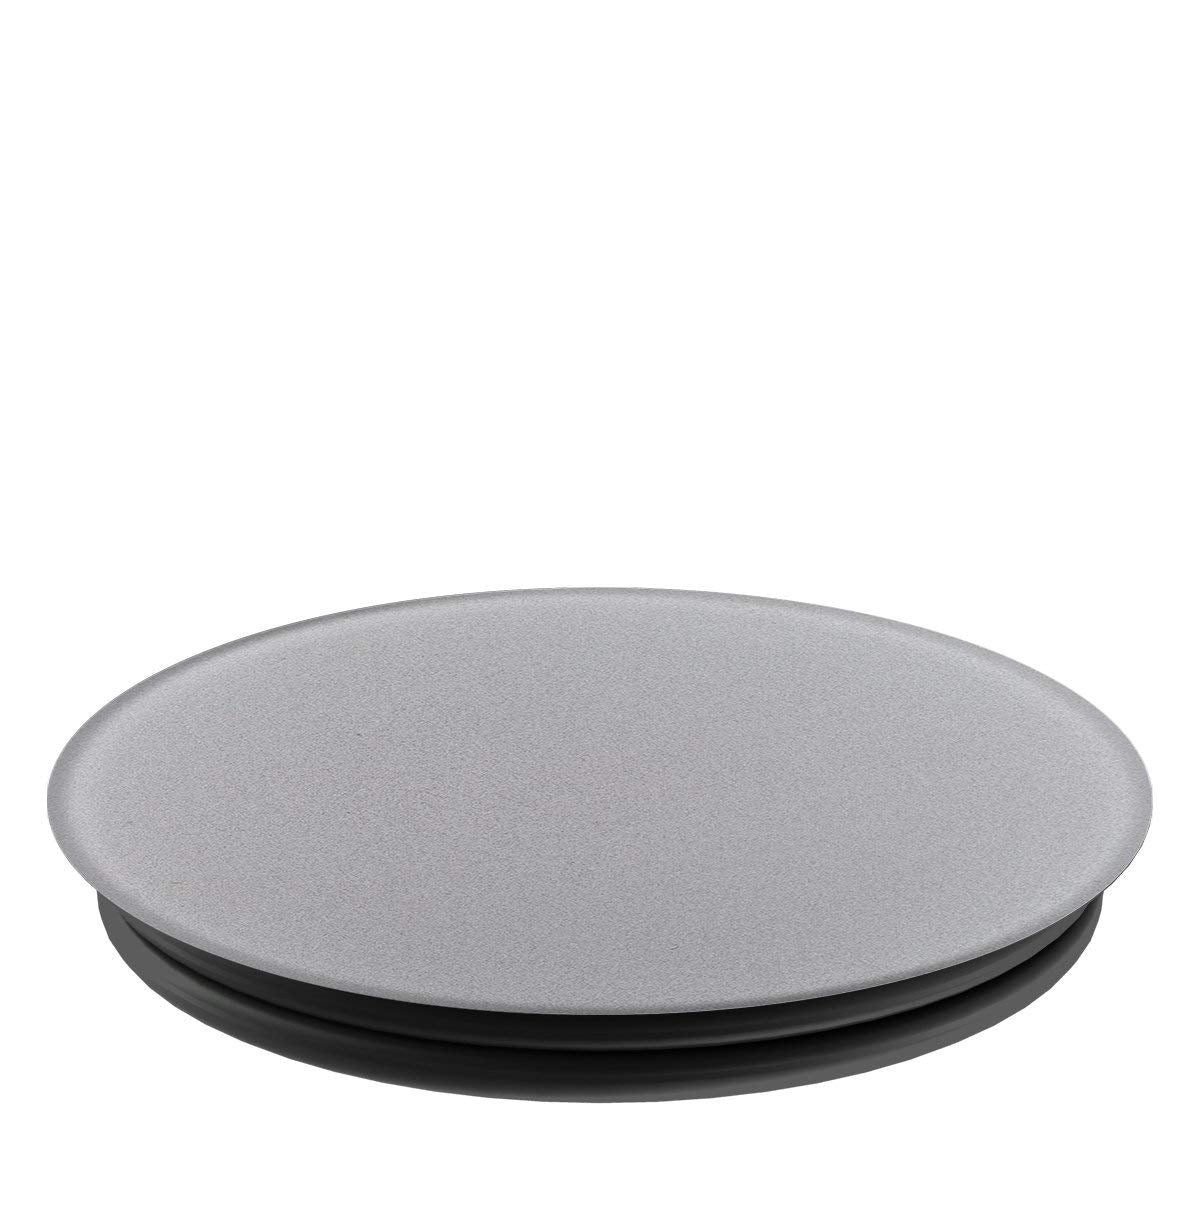 PopSockets Grip Aluminum Space Gray, PopSockets